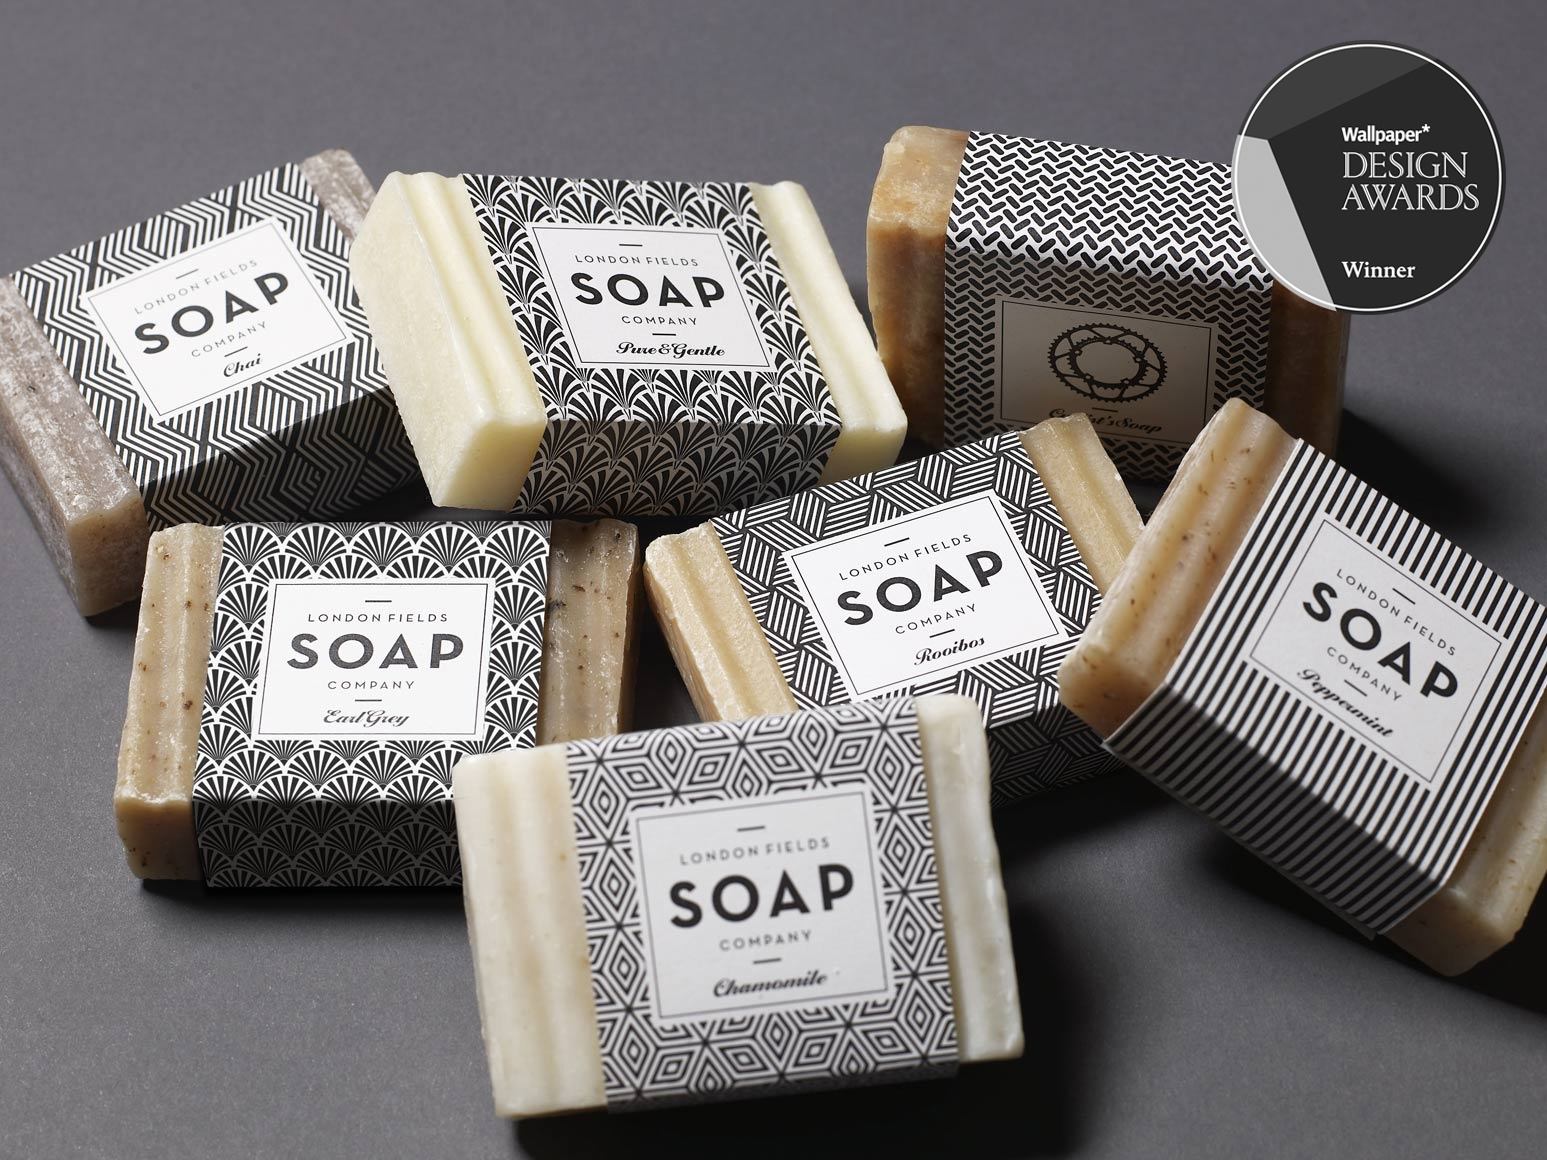 London Fields Soap Company Brand Packaging One Darnley Road 2